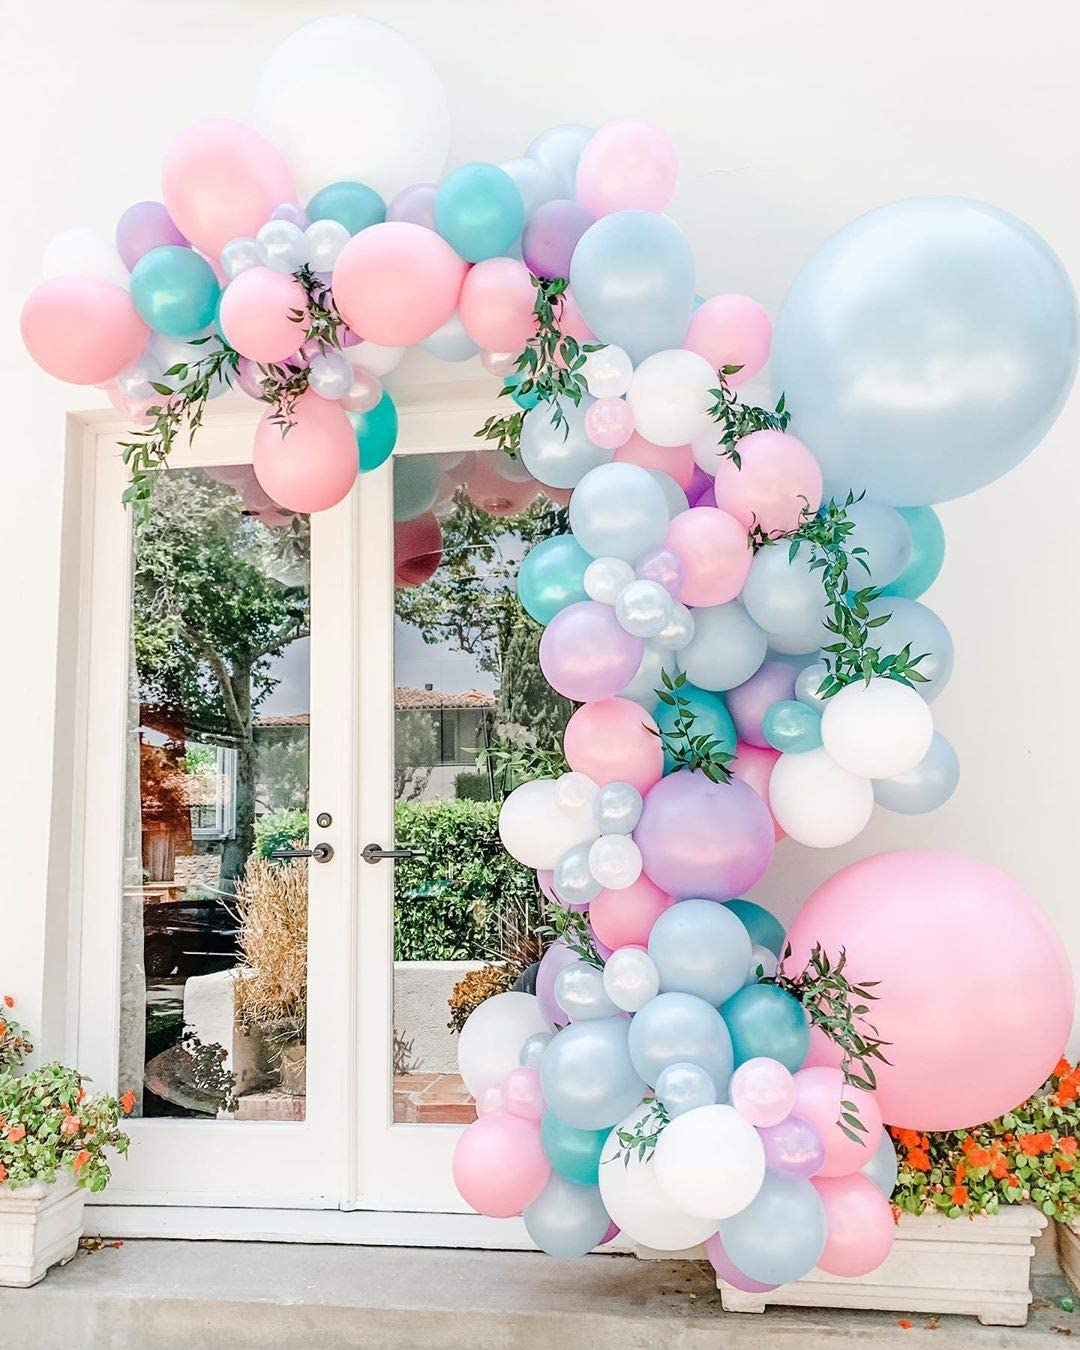 Pearl Balloons Garland Kit, 121pcs White Pink Pearl Blue Purple Tiffany Latex Balloons Backdrop Decor Ideas for Wedding Birthday Bridal Baby Shower Anniversary Party Supplies